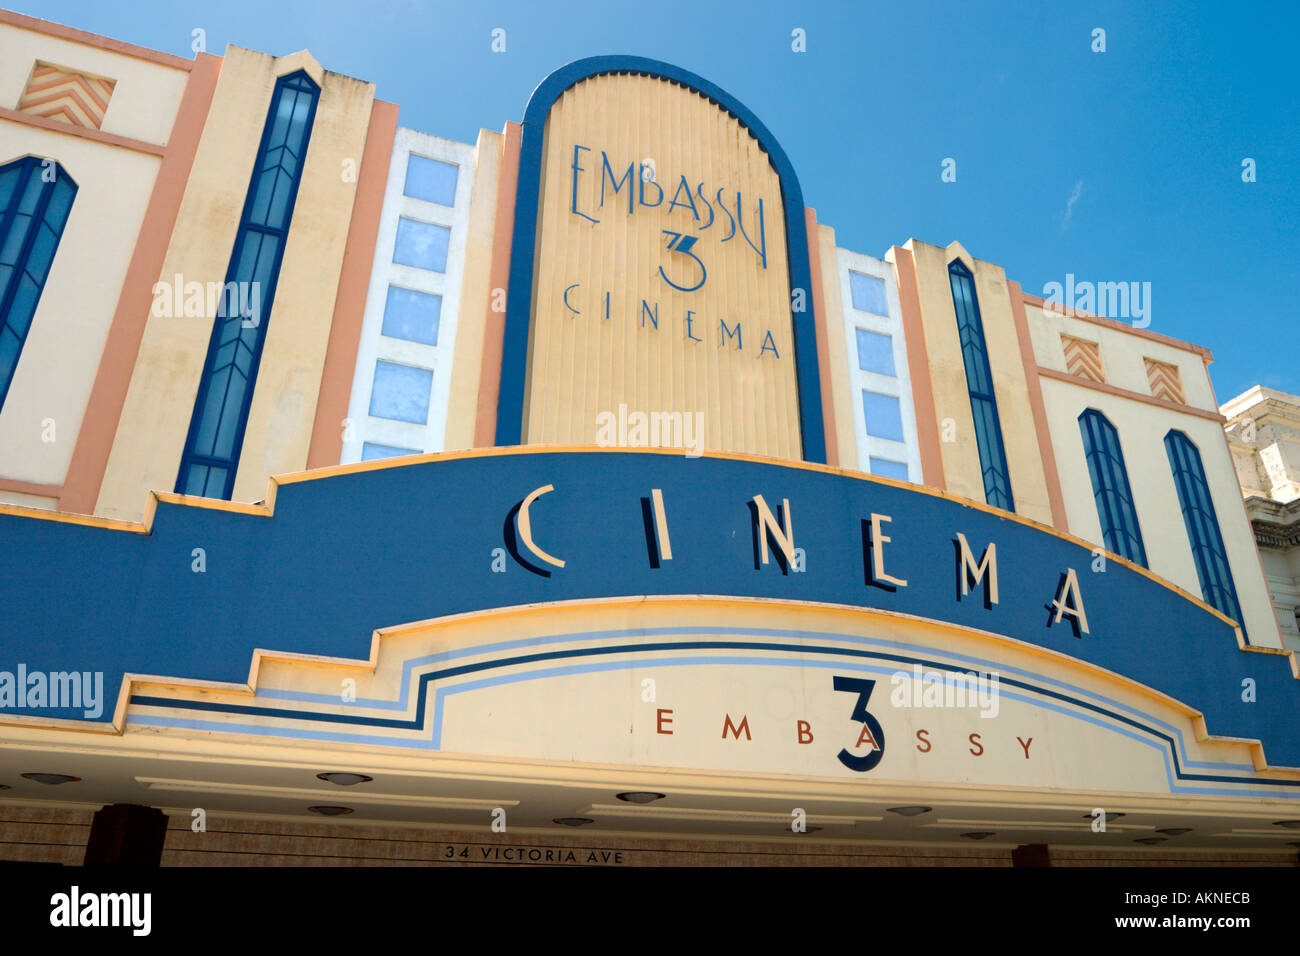 Art Deco Embassy Cinema on Victoria Avenue in the town centre, Wanganui, North Island, New Zealand - Stock Image